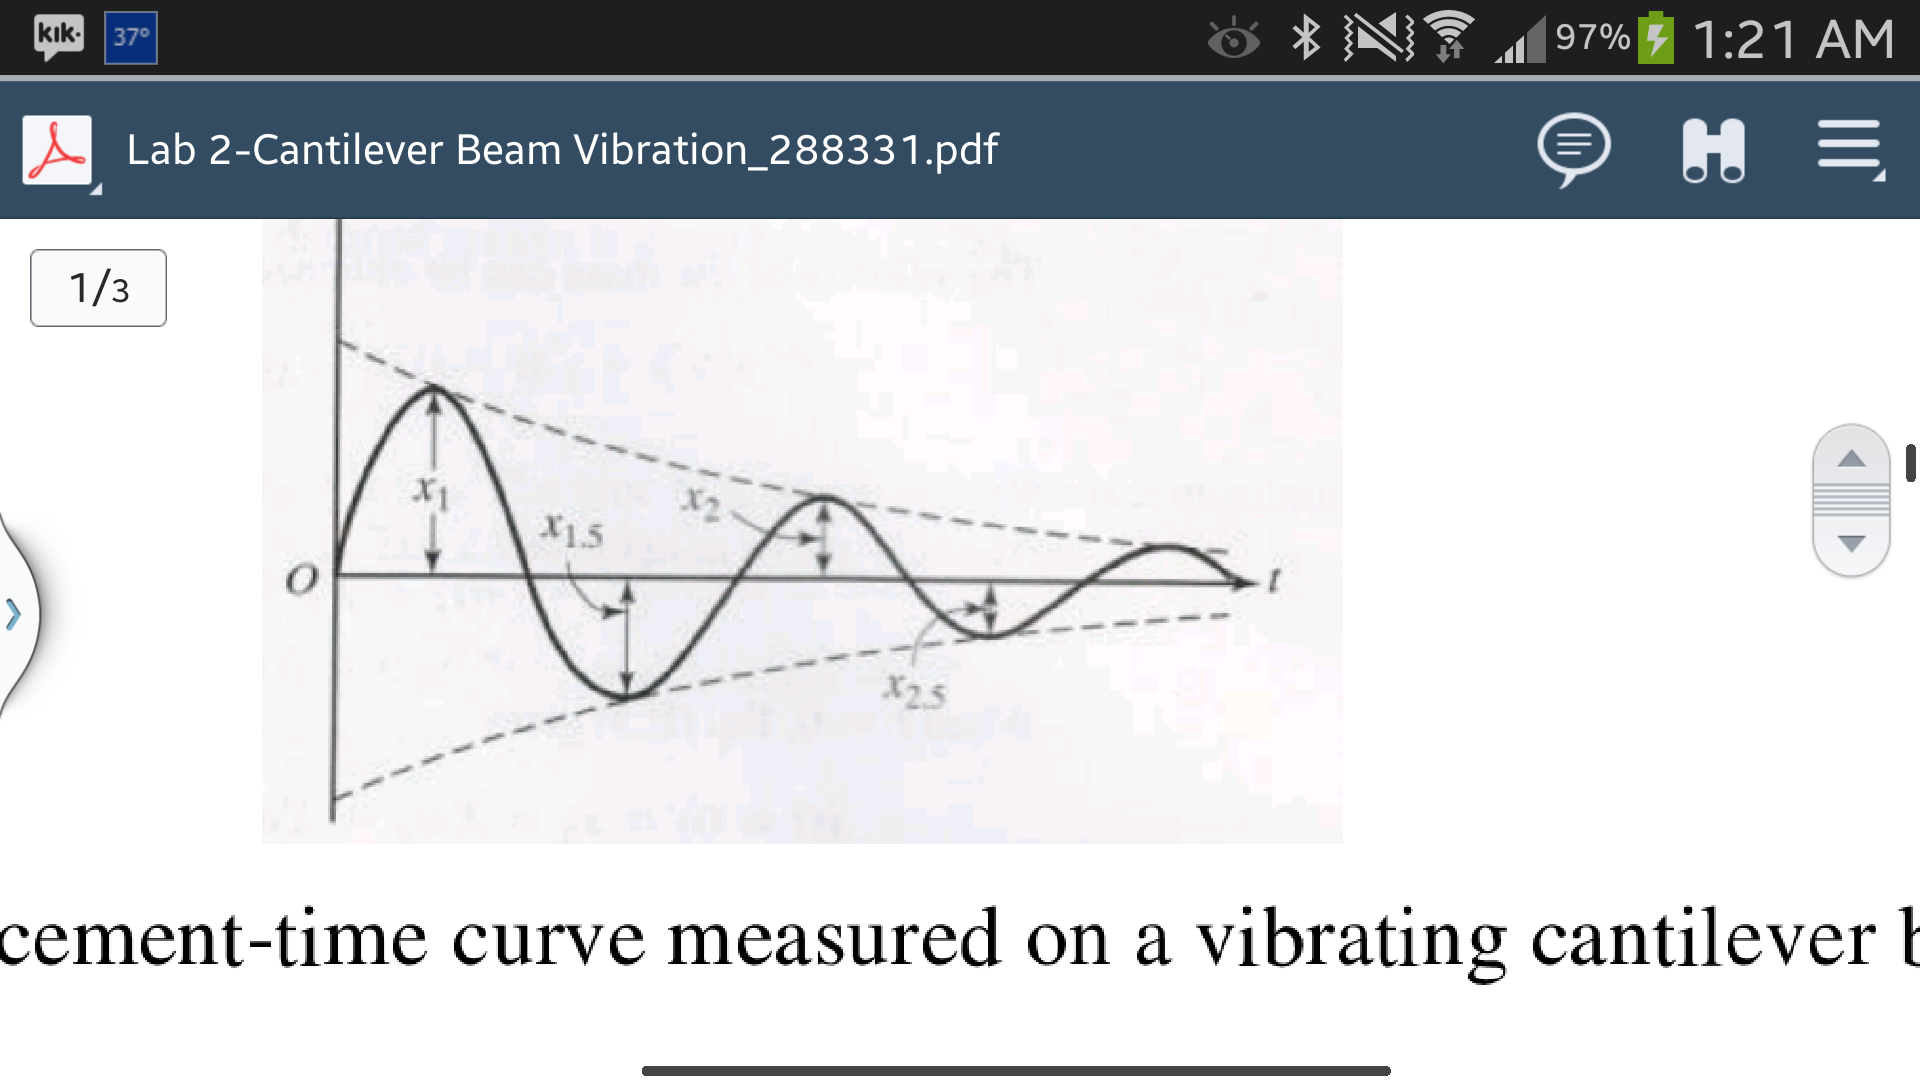 cement-time curve measured on a vibrating cantilev